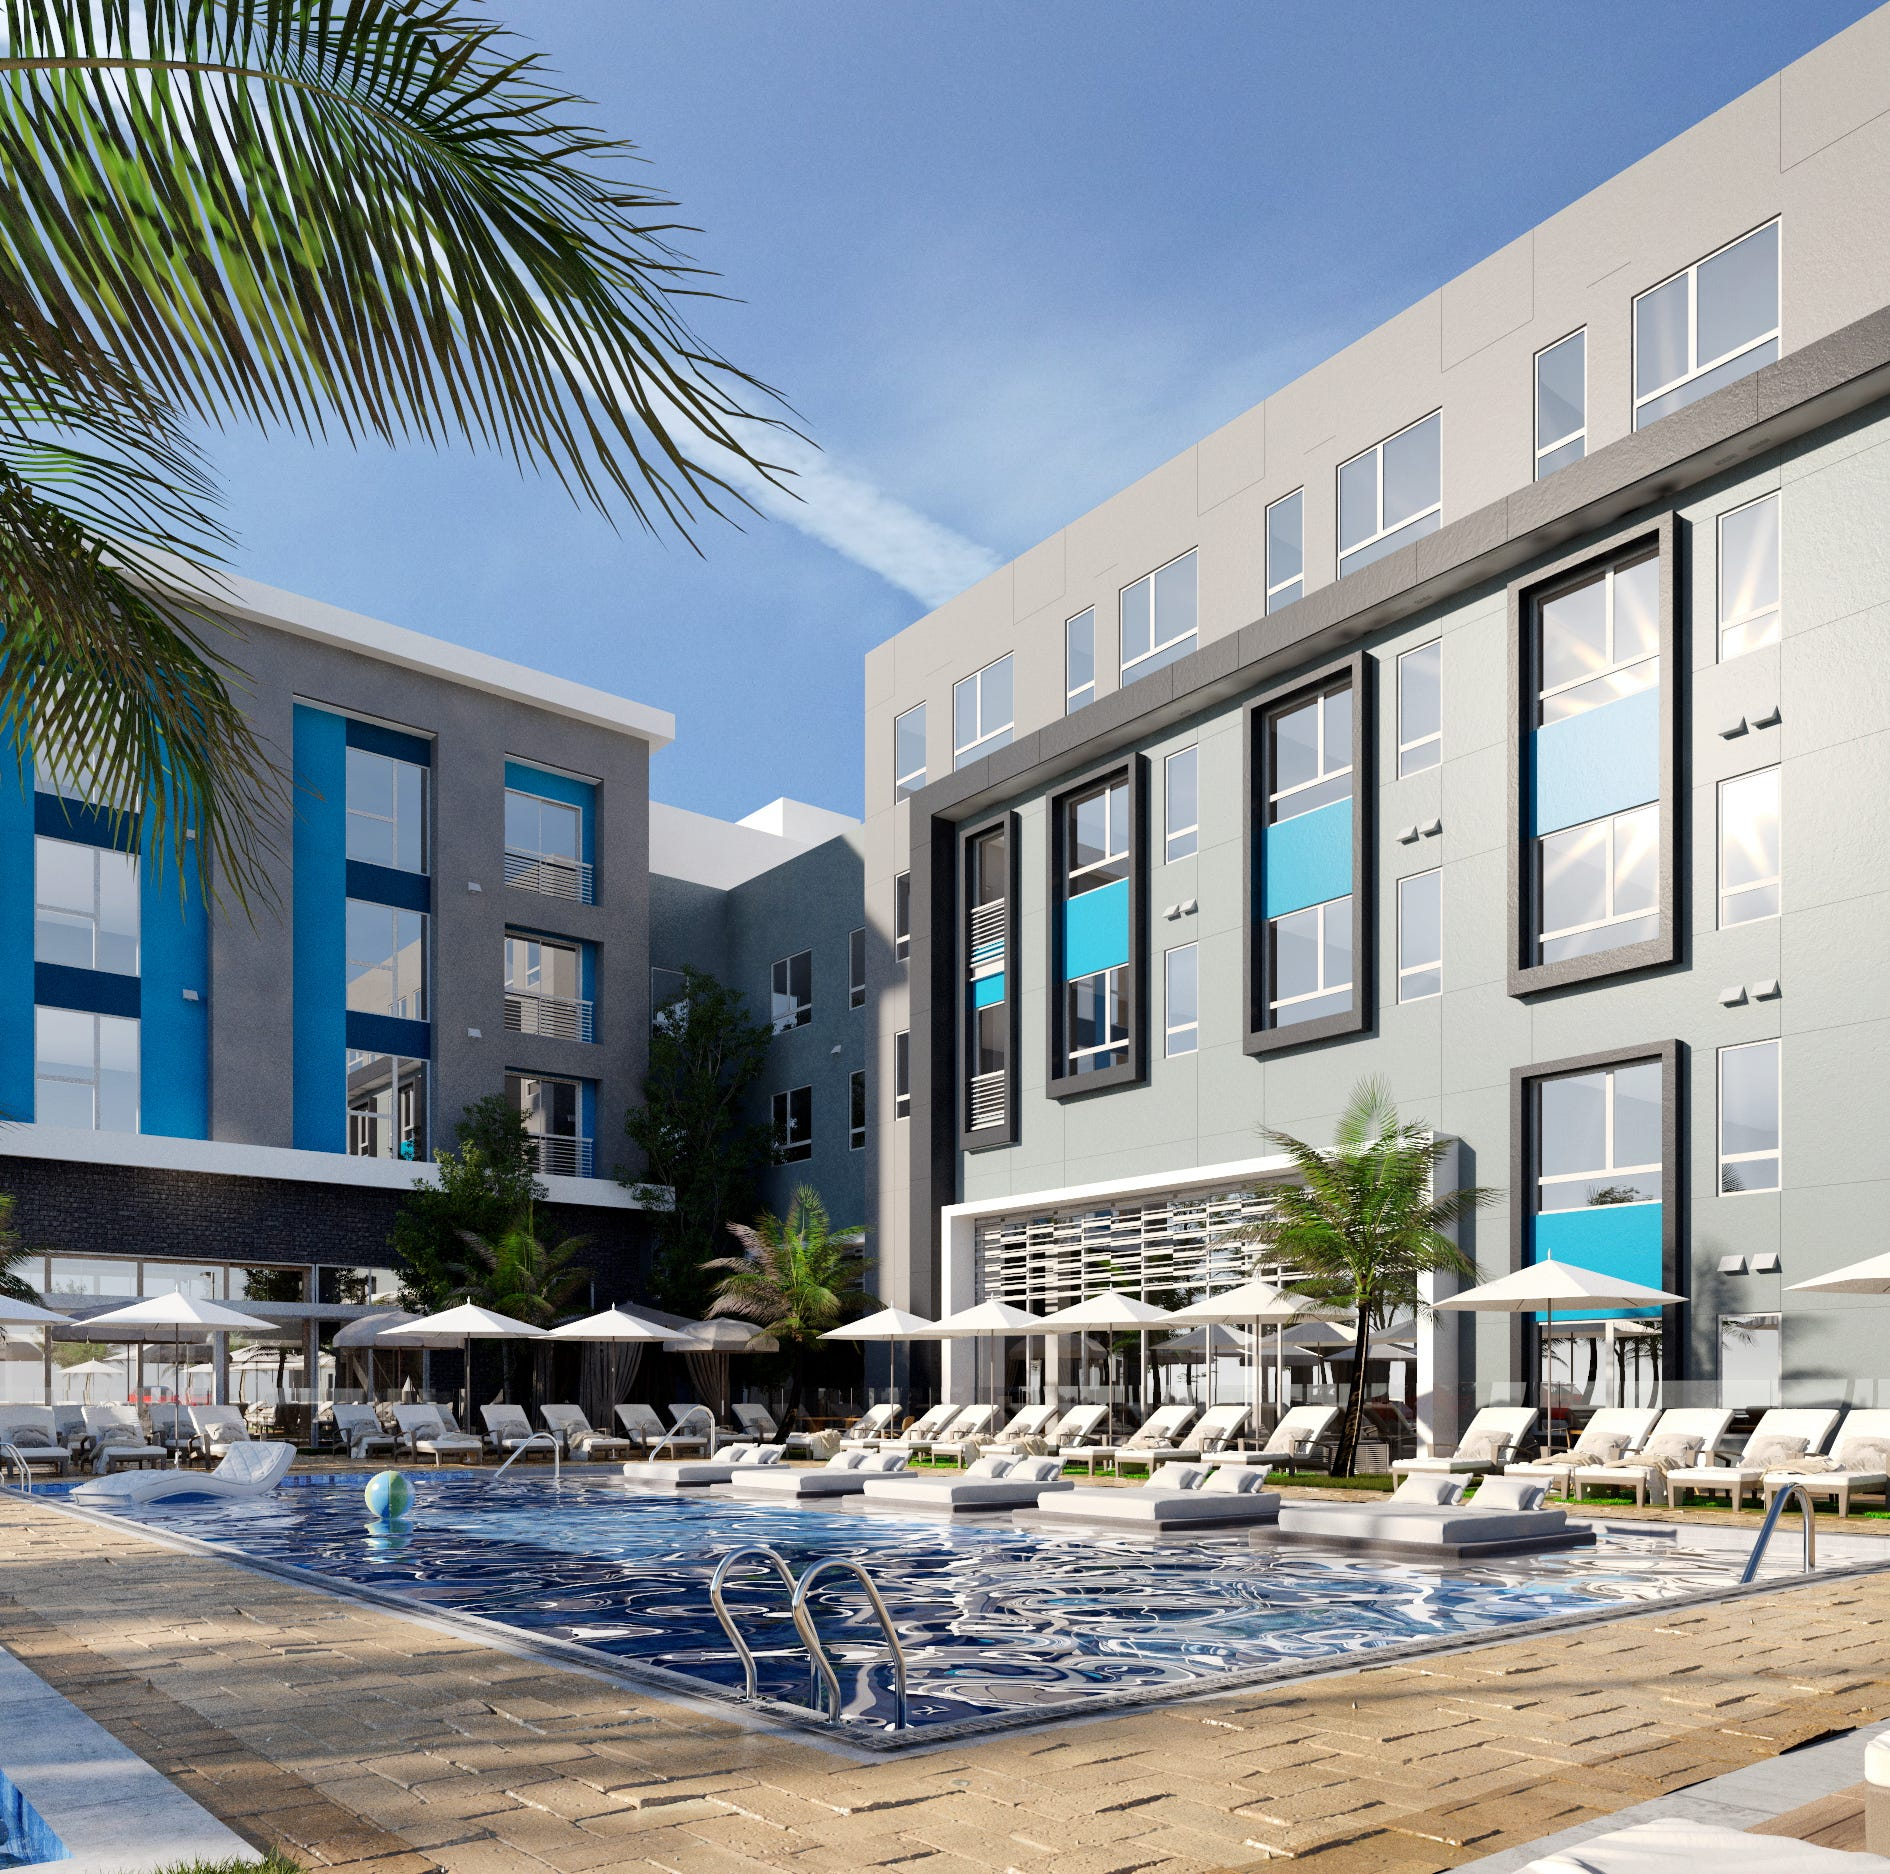 New rendering shows lots of California inspiration as Park Lane construction revs up